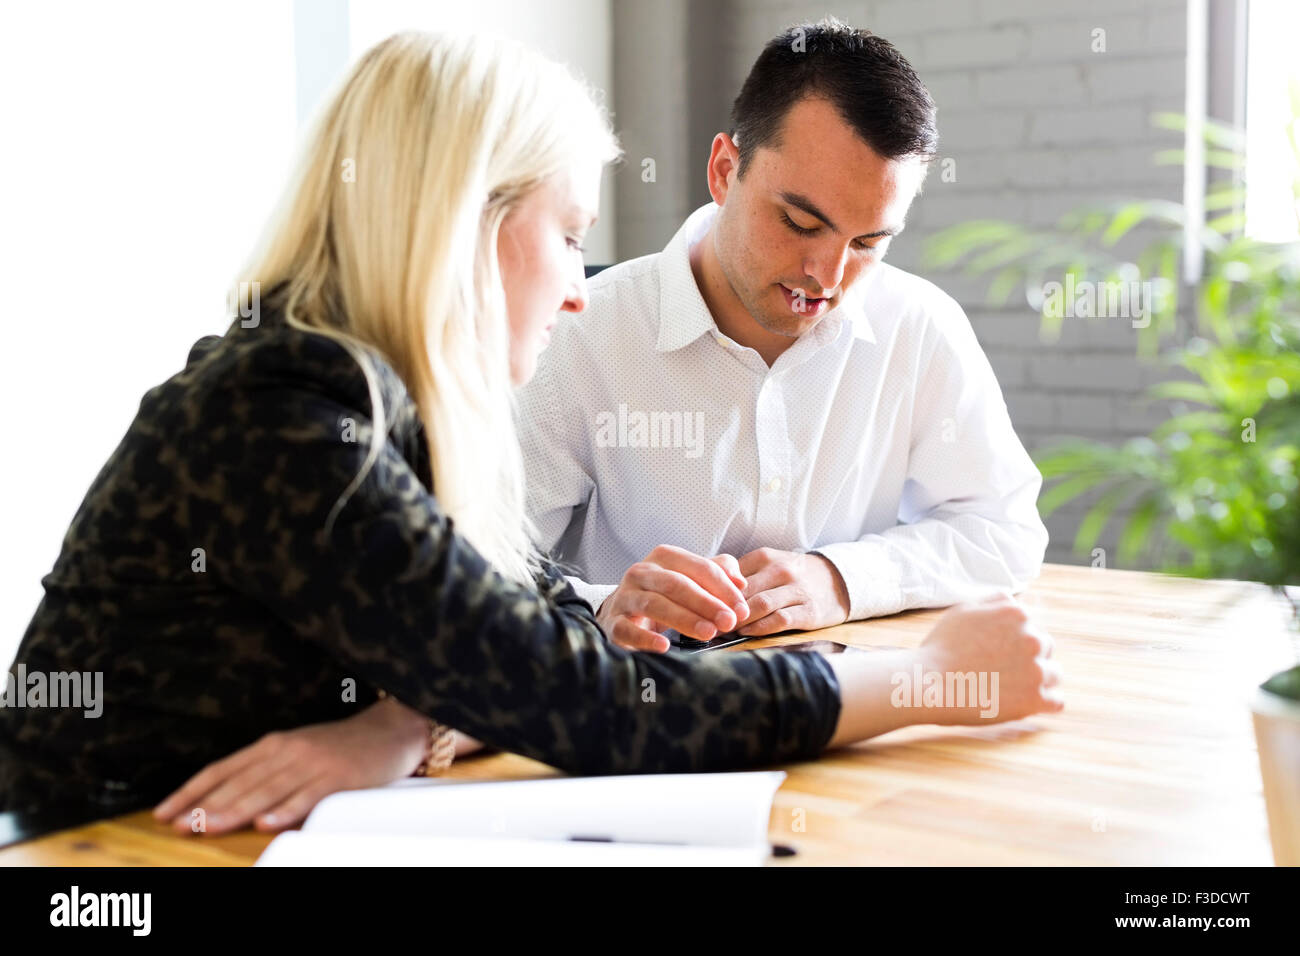 Woman discussing idea with man - Stock Image